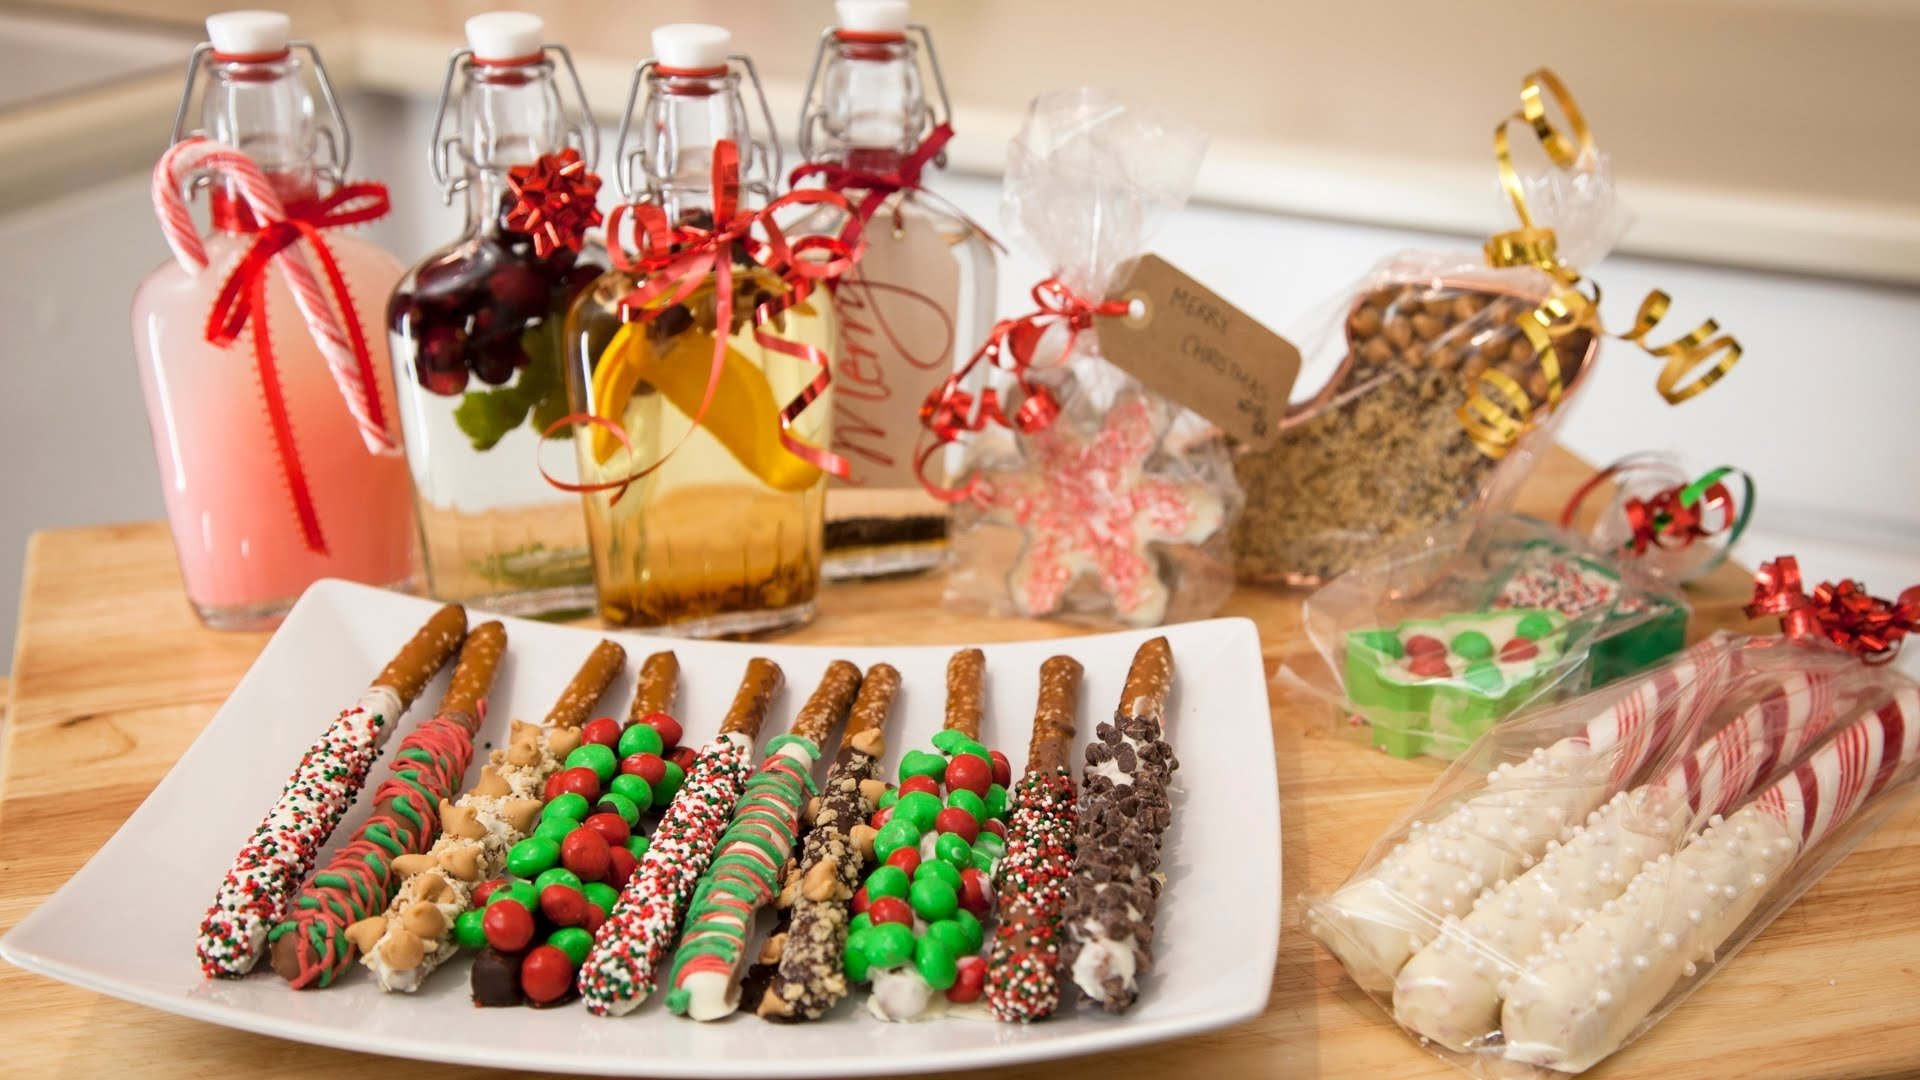 10 Elegant Food Gift Ideas For Christmas 3 holiday edible gift ideas chocolate pretzels cookie cutter 2020